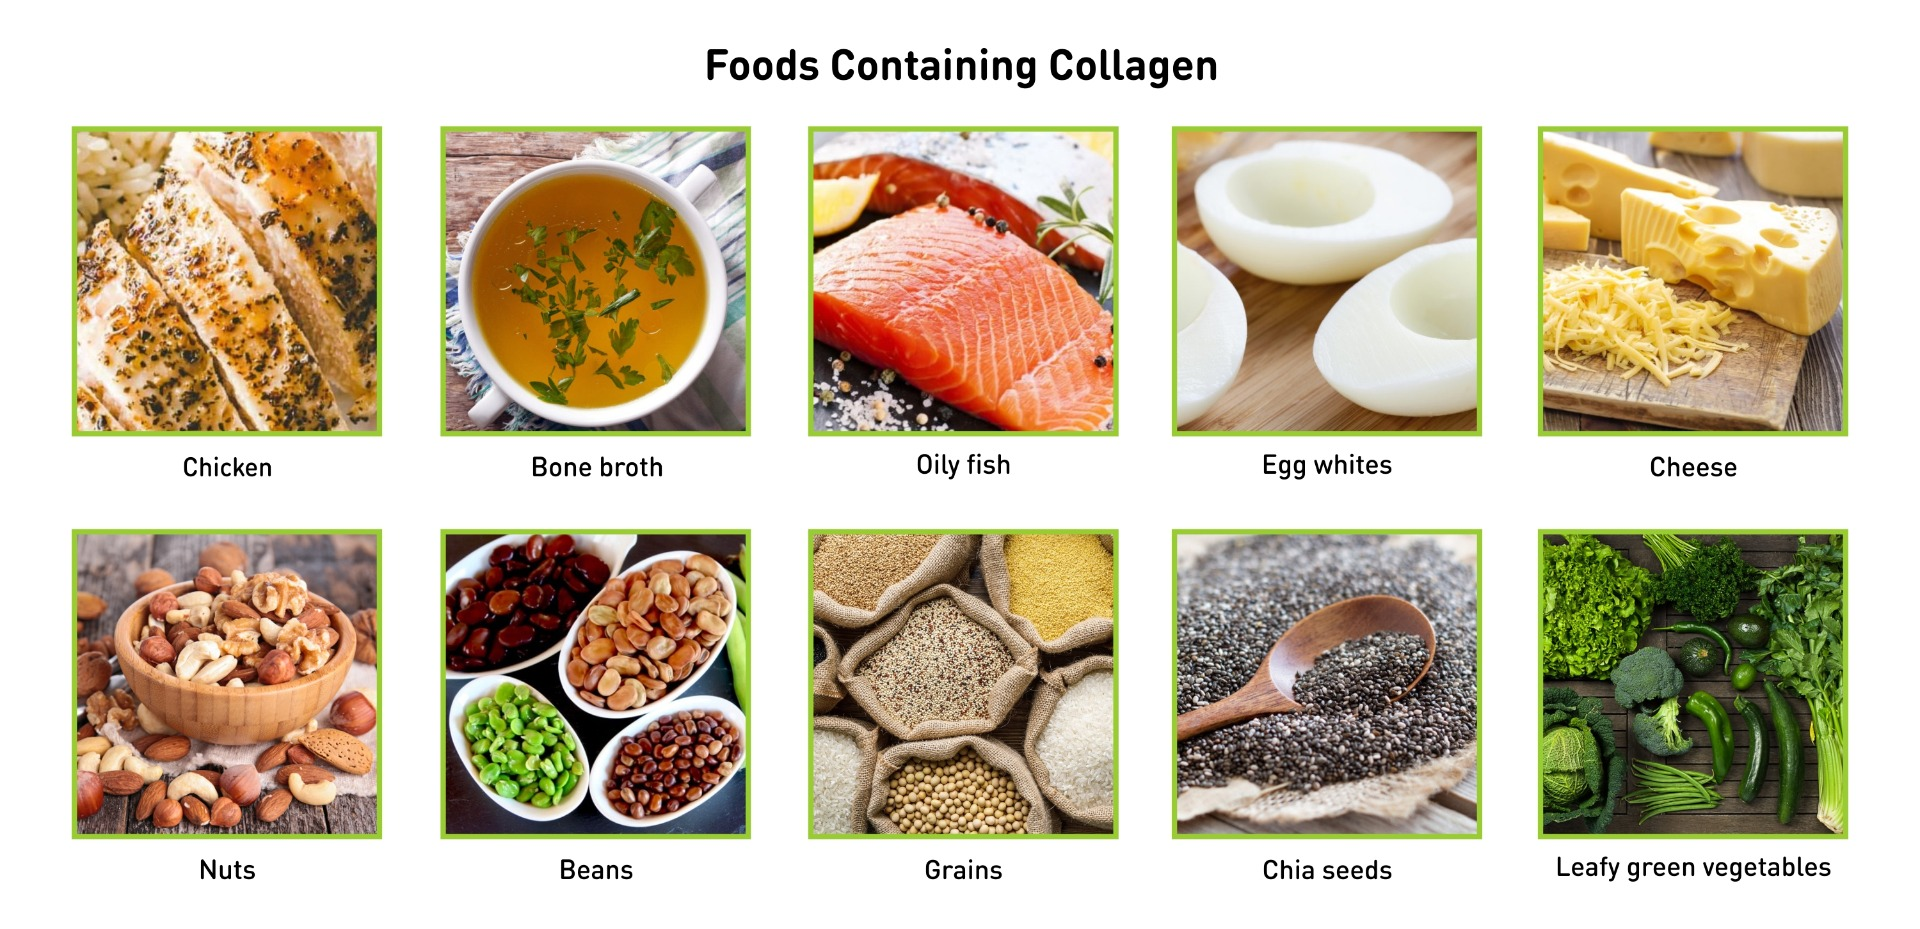 Food Containing Collagen